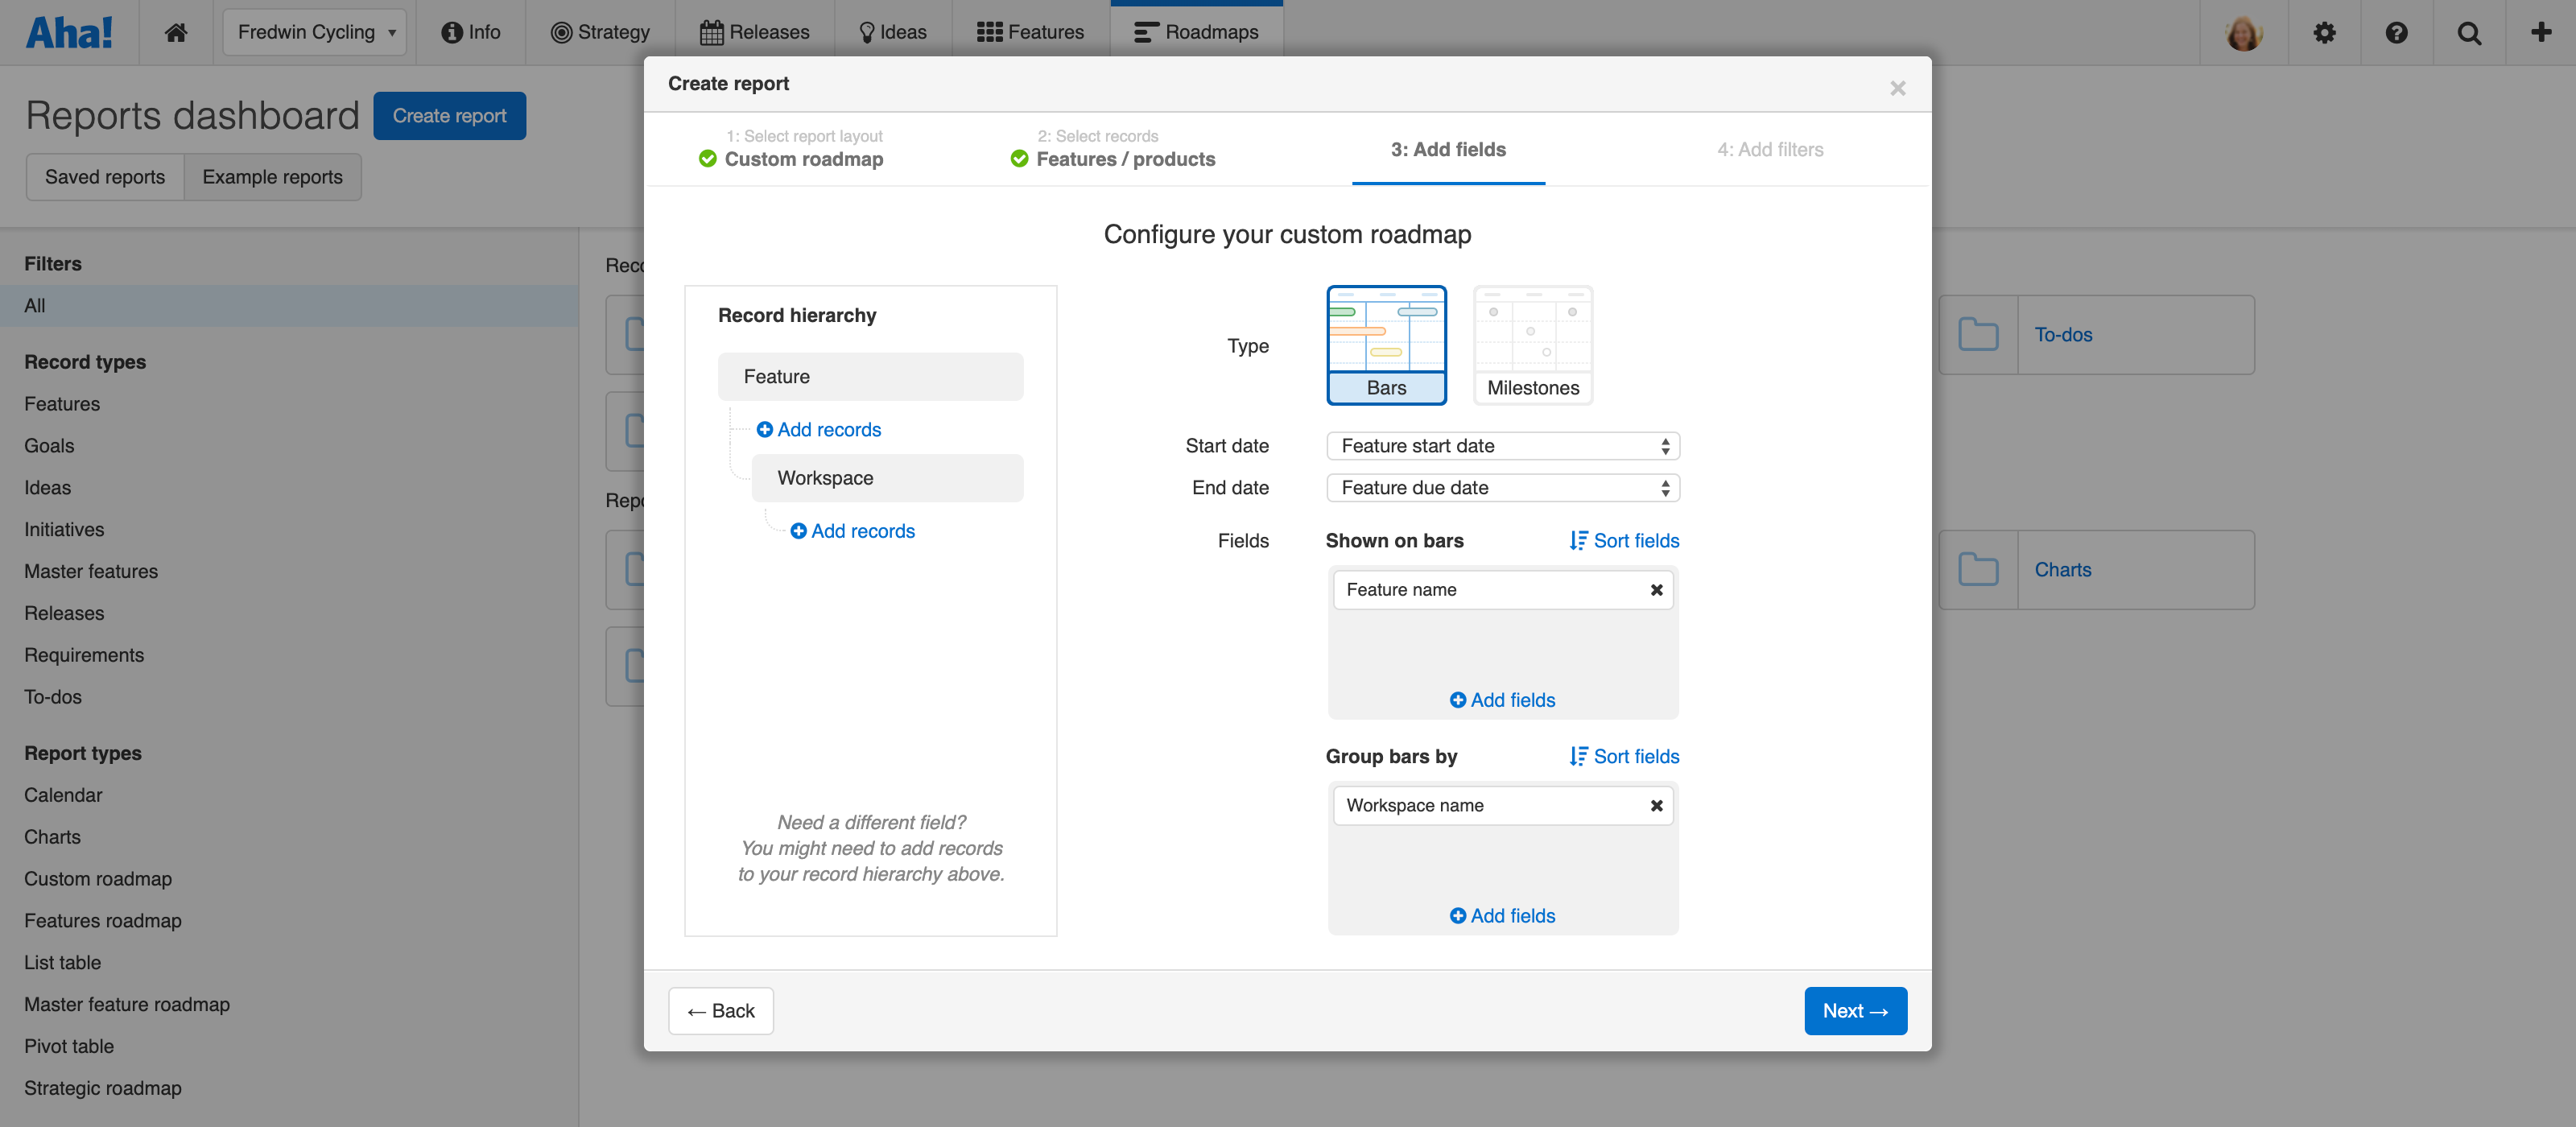 There are new configuration options for a custom roadmap.